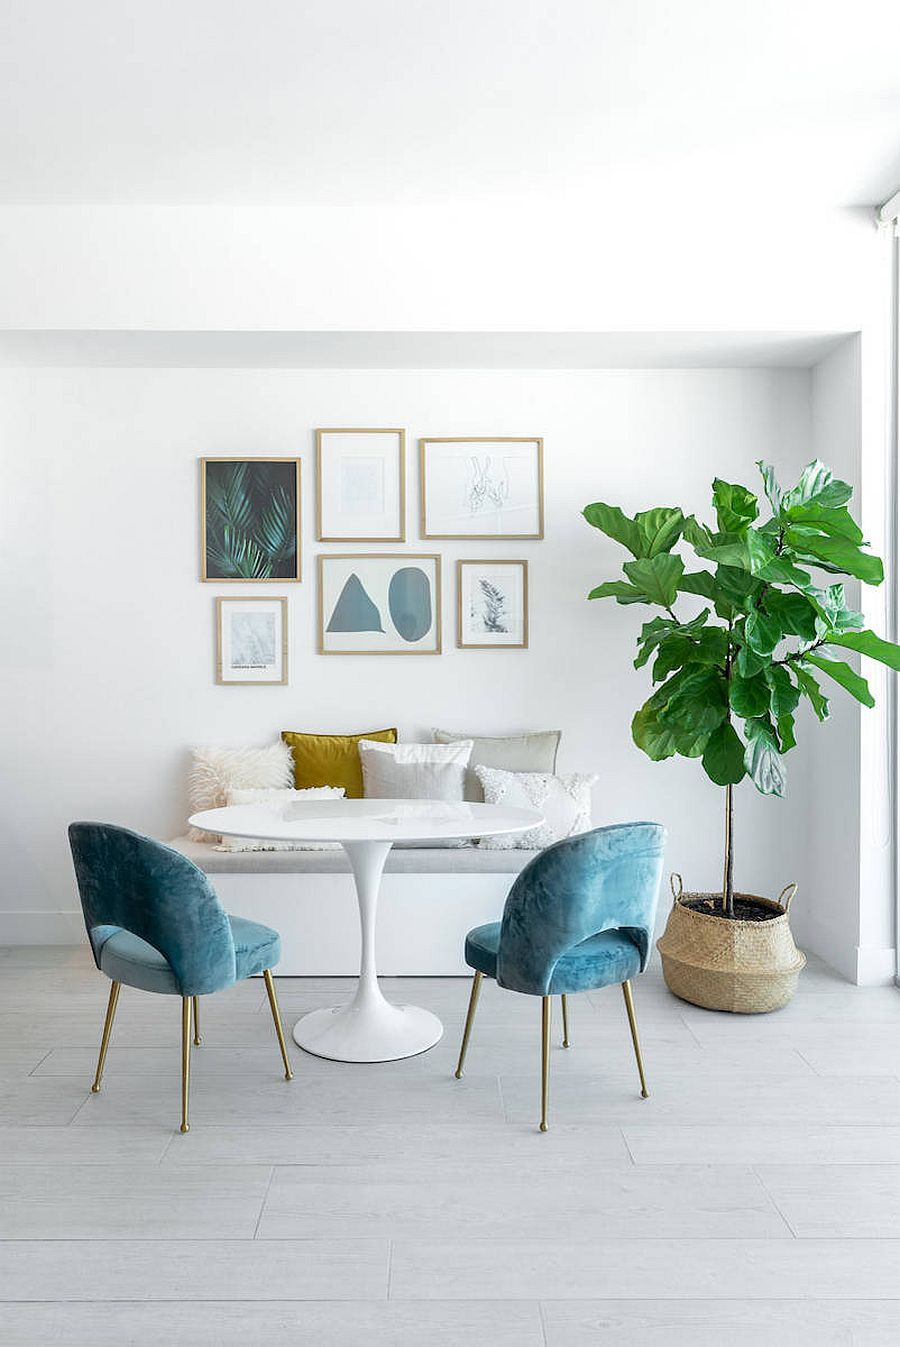 Combining-minimal-and-beach-styles-in-the-small-dining-room-with-a-neutral-backdrop-68304